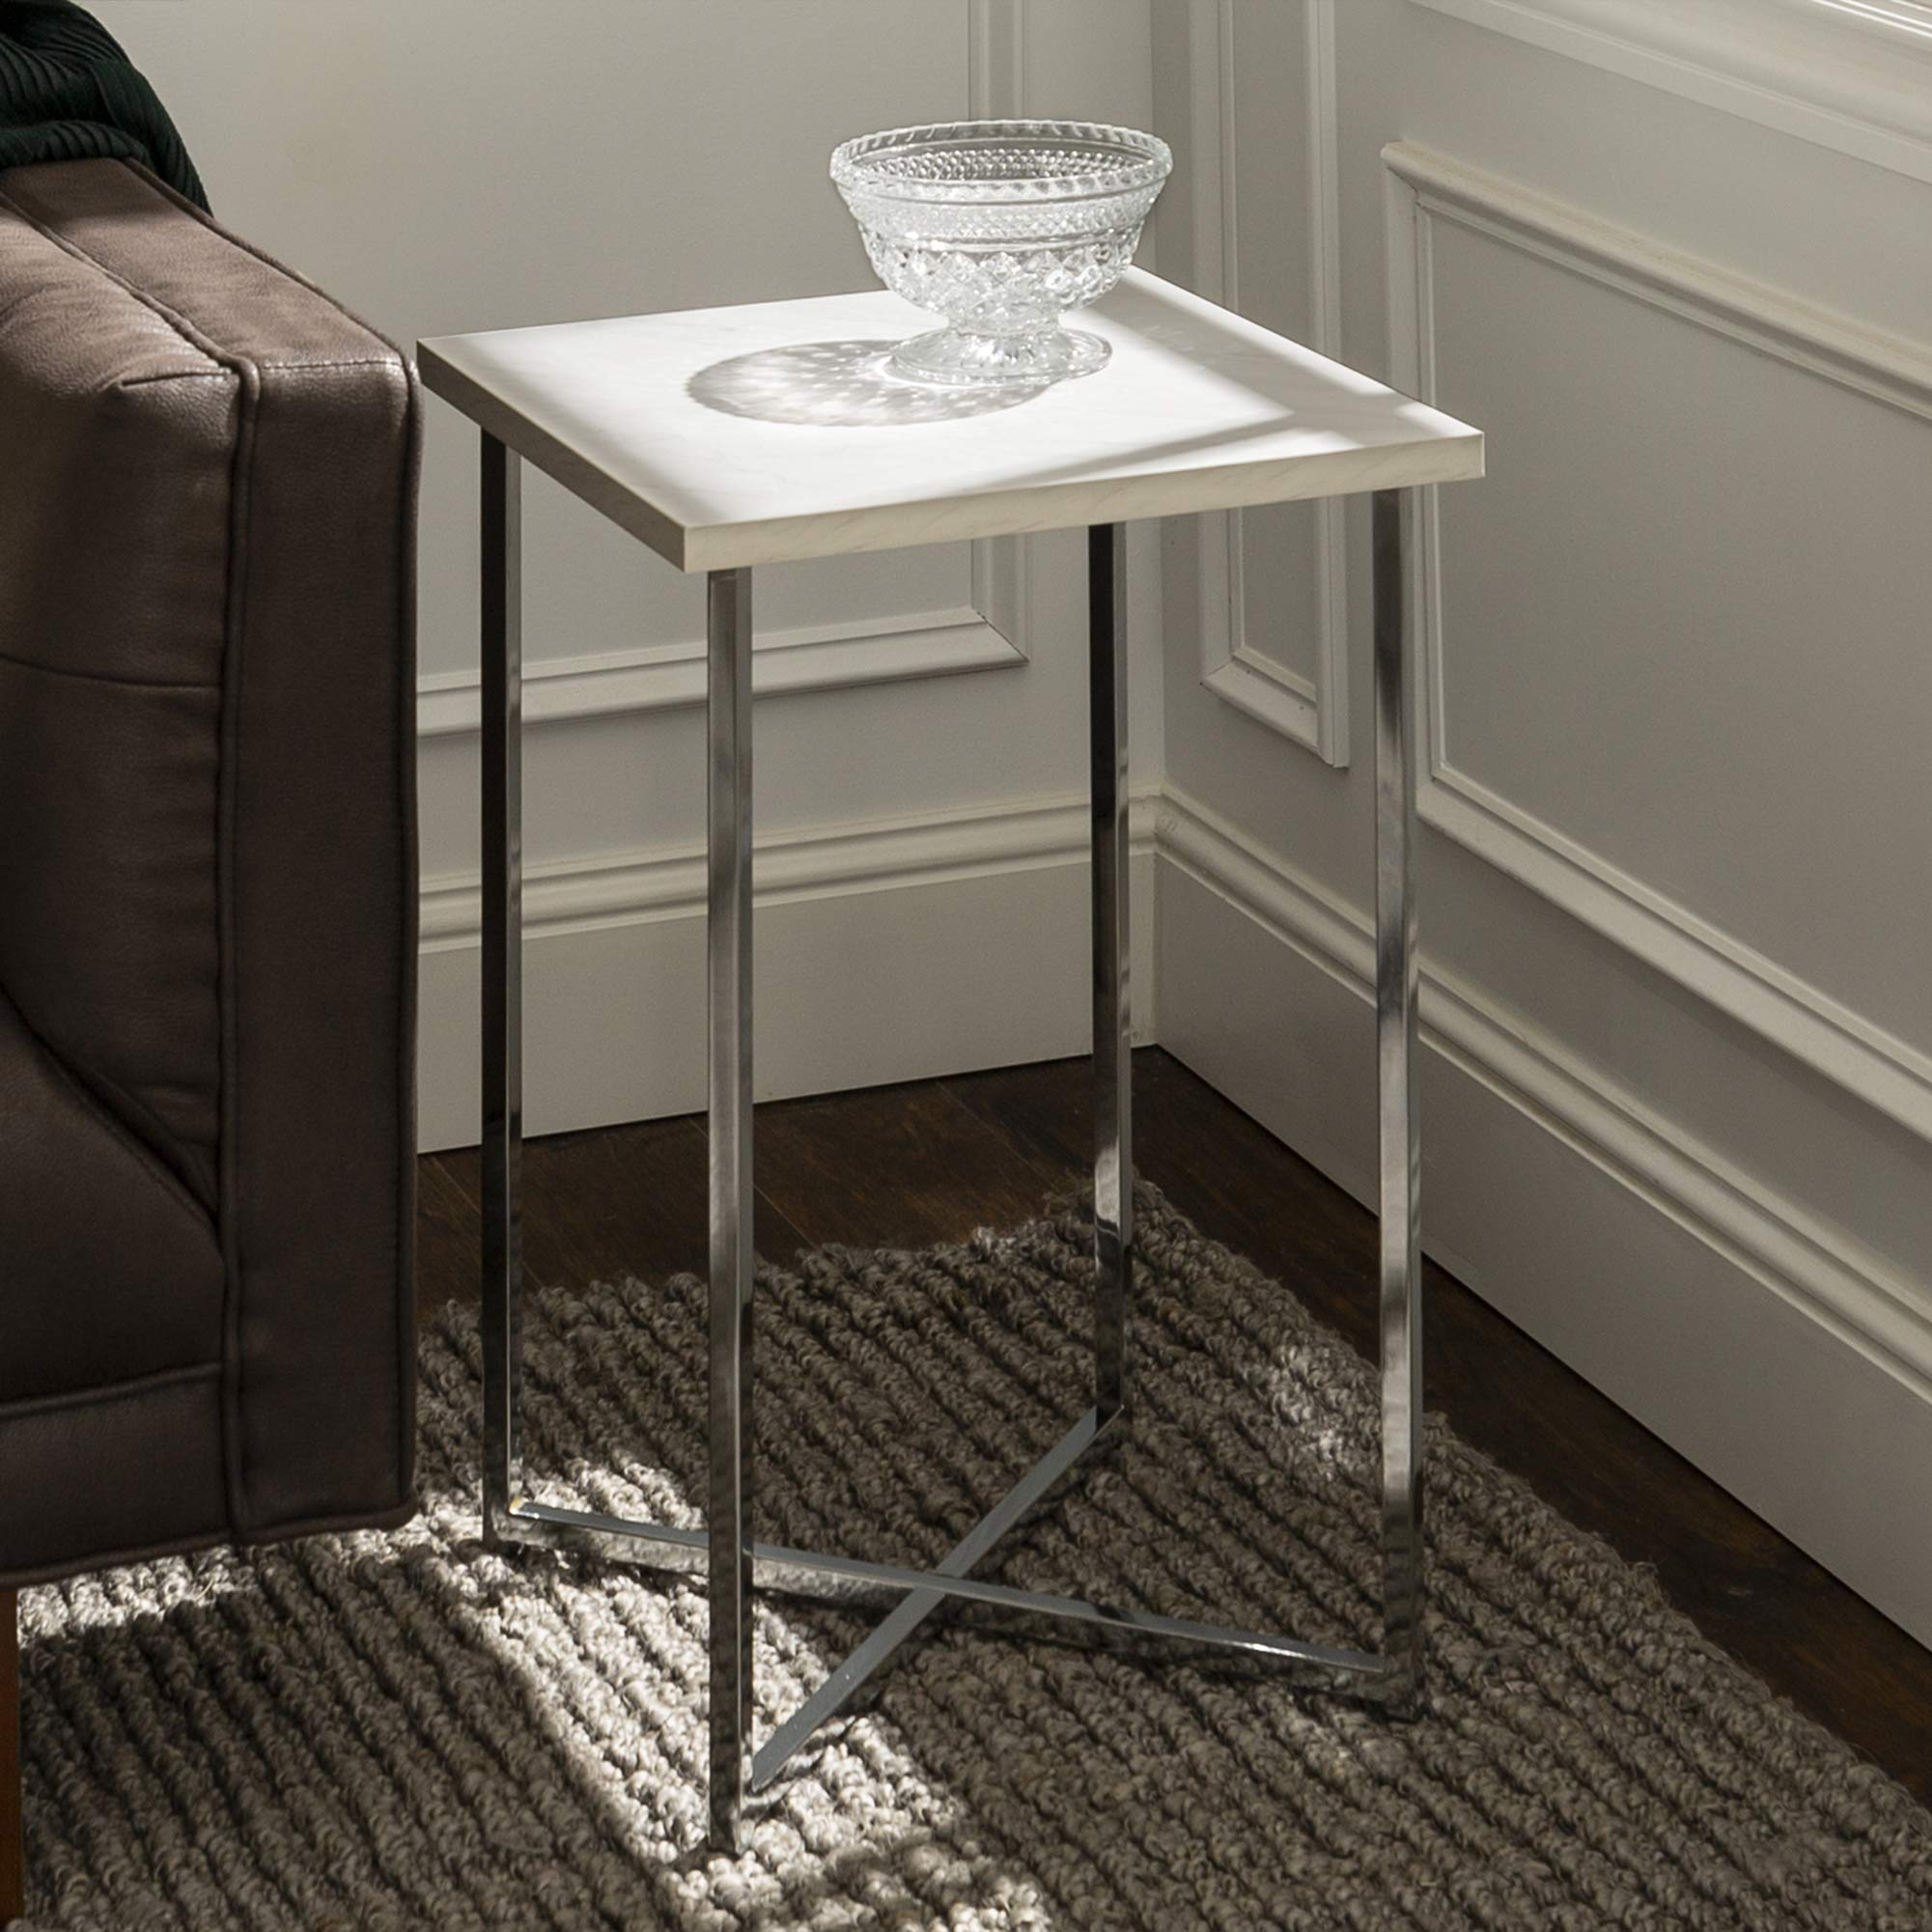 WE Furniture Modern Square Side End Accent Table Living Room, 16 Inch, White Marble, silver by WE Furniture